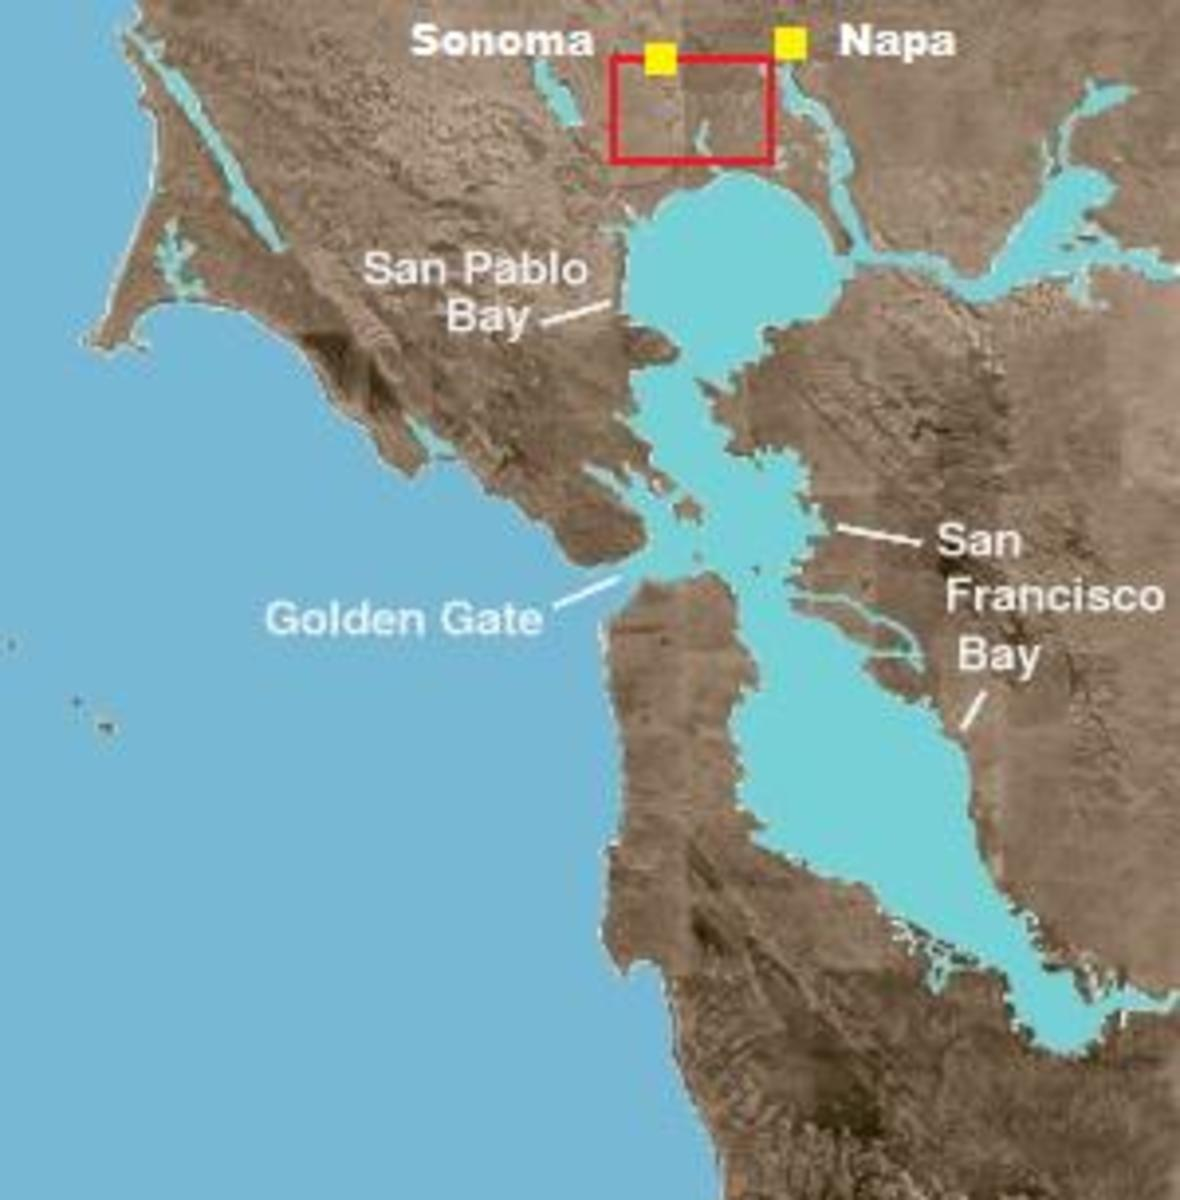 The Carneros AVA in relation to San Pablo Bay.